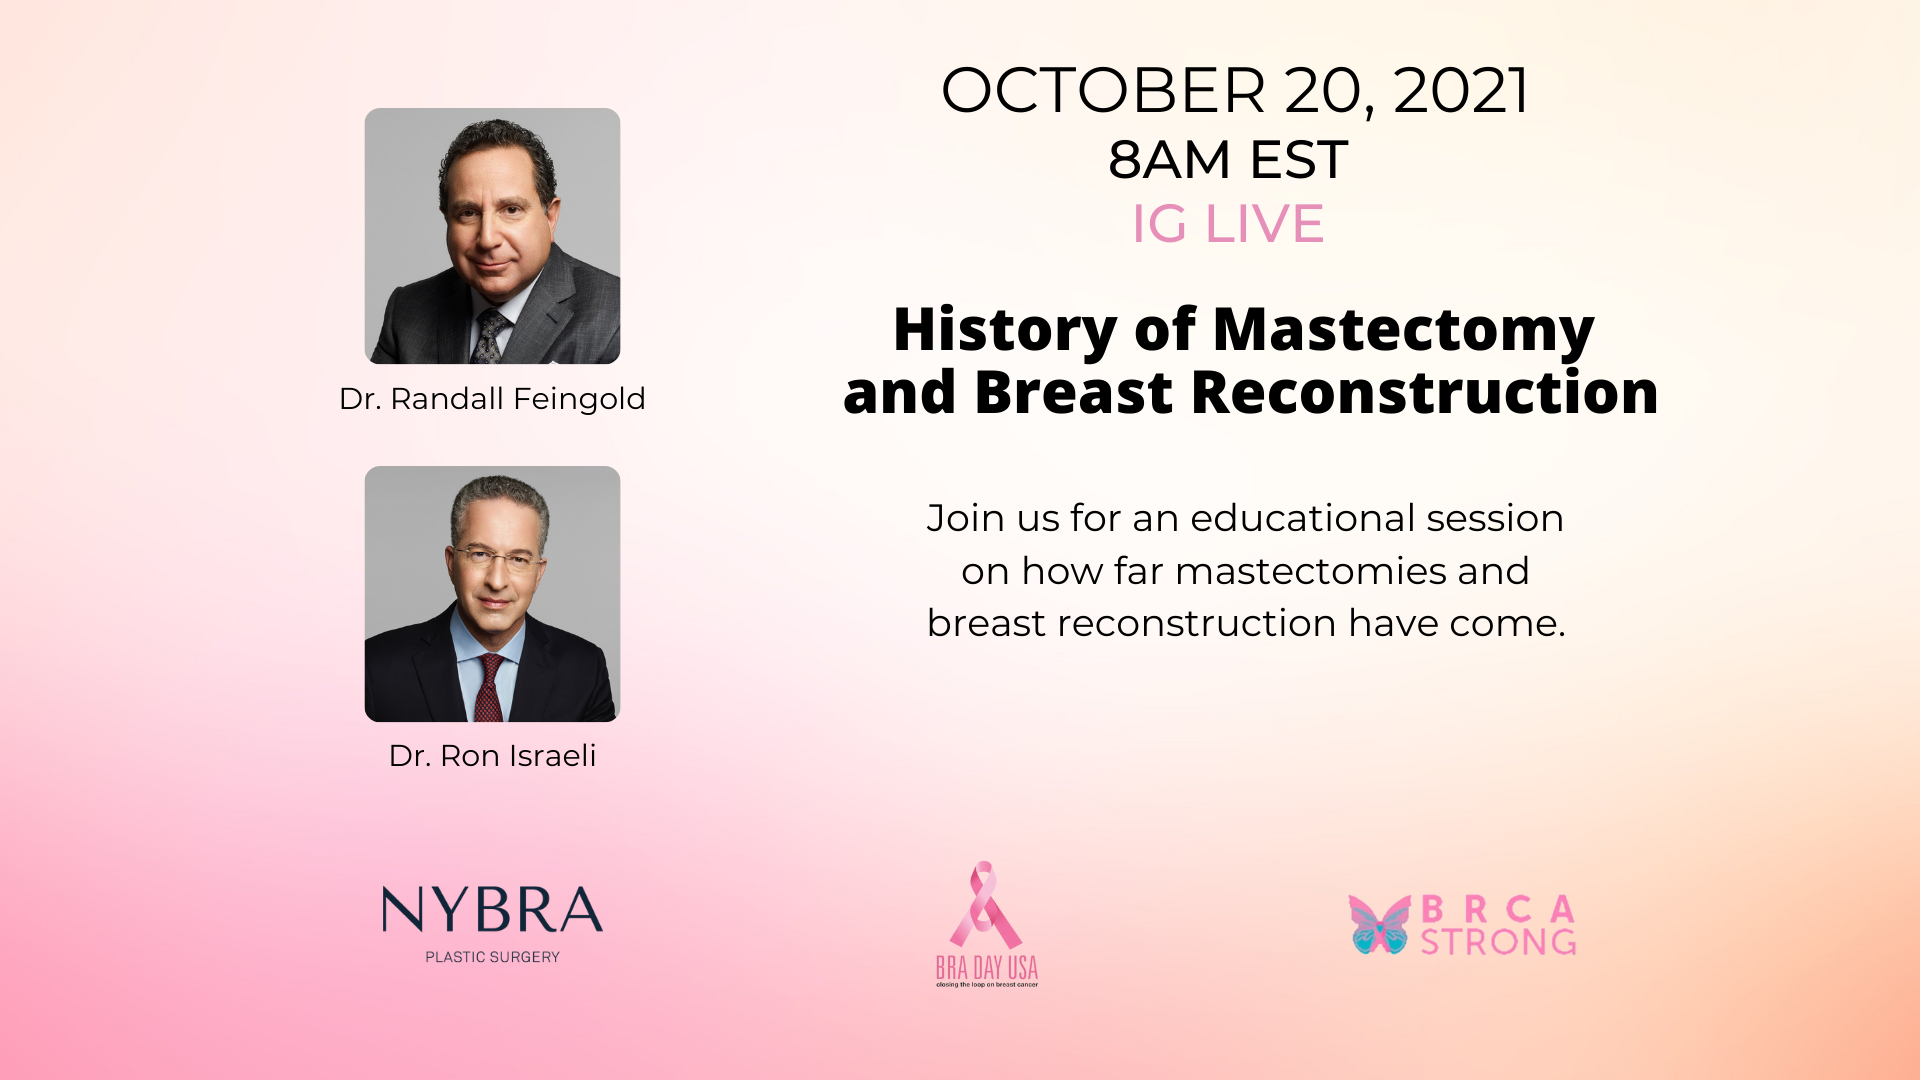 BRA Day promo graphic with thumbnail images of Dr. Feingold and Dr. Israeli for their discussion on History of Mastectomy and Breast Reconstruction.